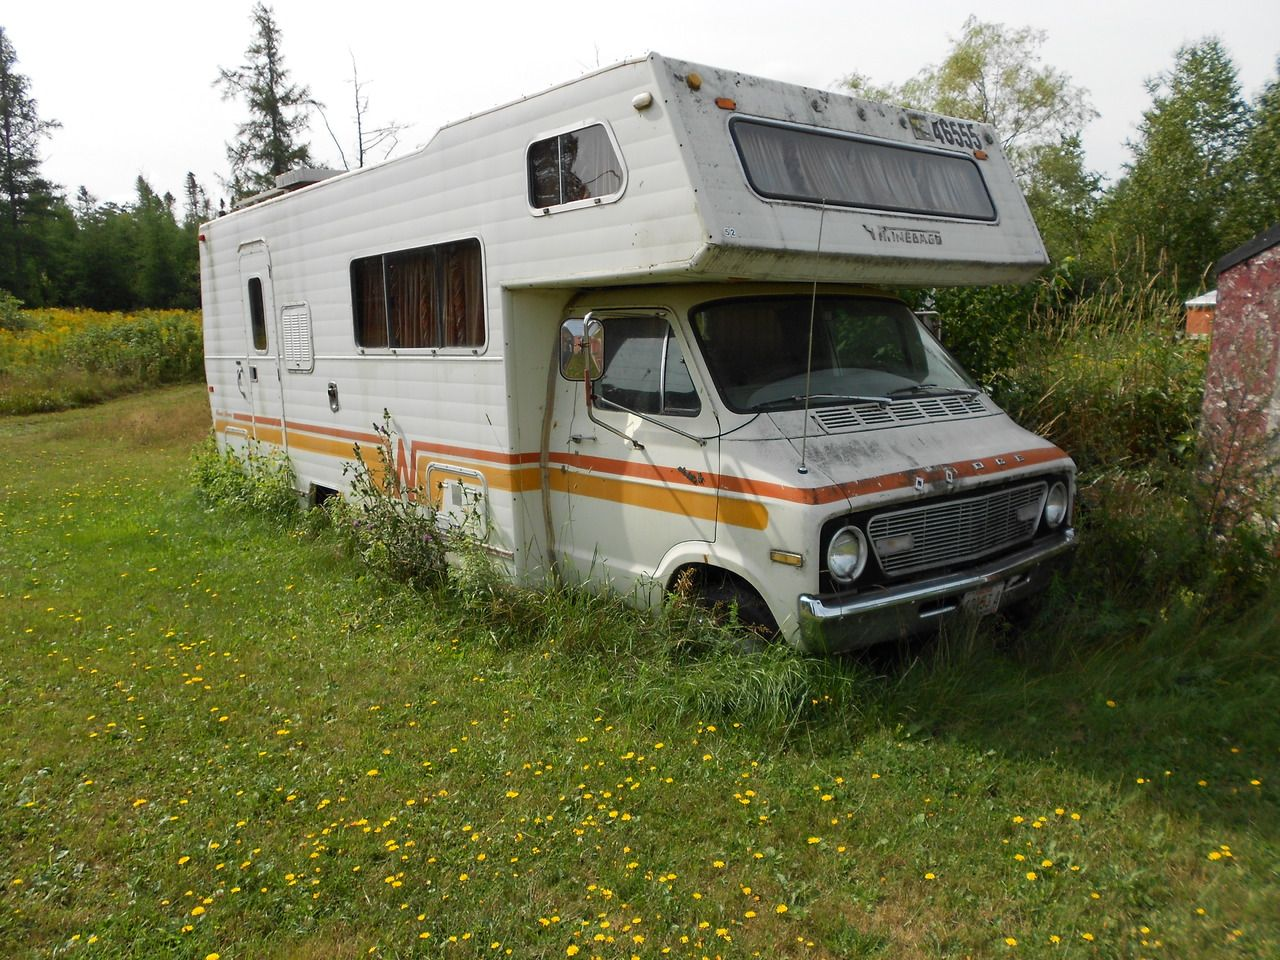 Dodge 440 Camper -- Anybody need a 440? HAHA. Out to pasture ...